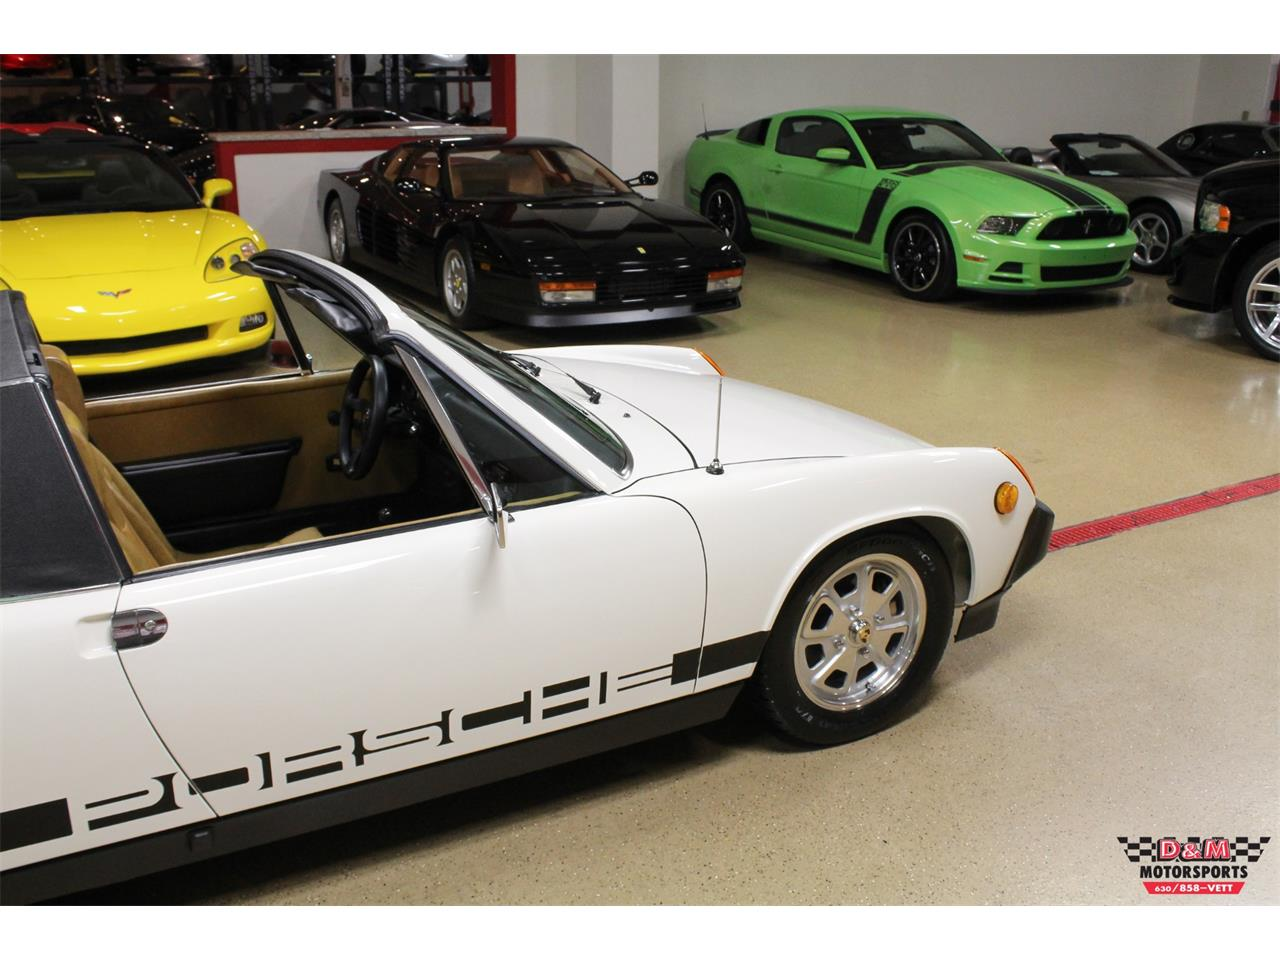 Large Picture of 1976 Porsche 914 located in Illinois - $29,995.00 Offered by D & M Motorsports - P8QY